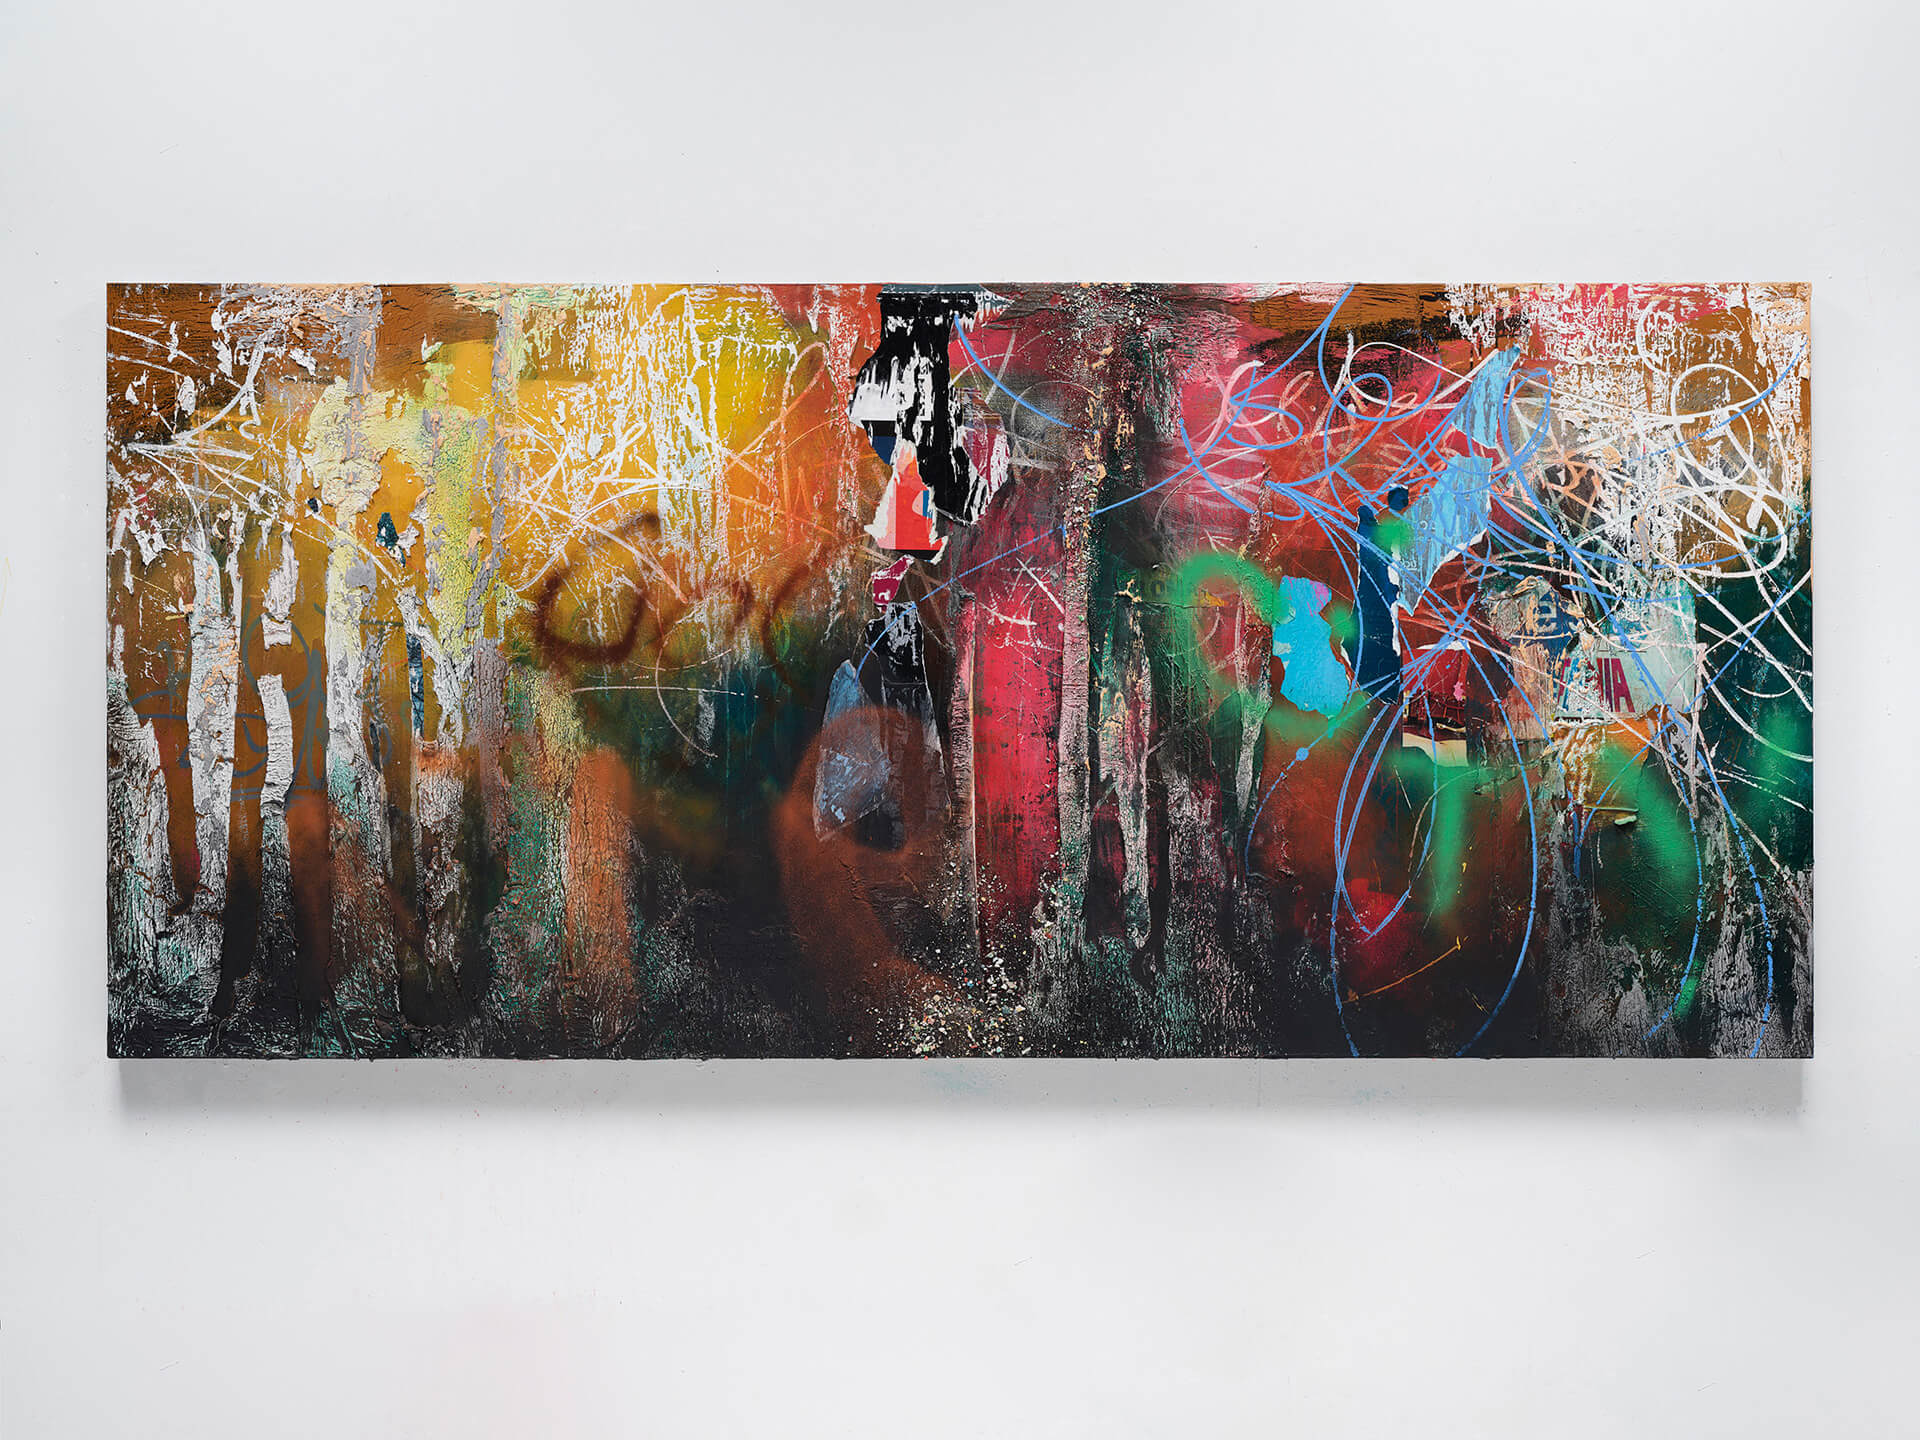 'Common Talk Deserves a Walk, The Situation's Changed', 2020 (60 x 132 inches) |It's Yours| José Parlá| STIRworld